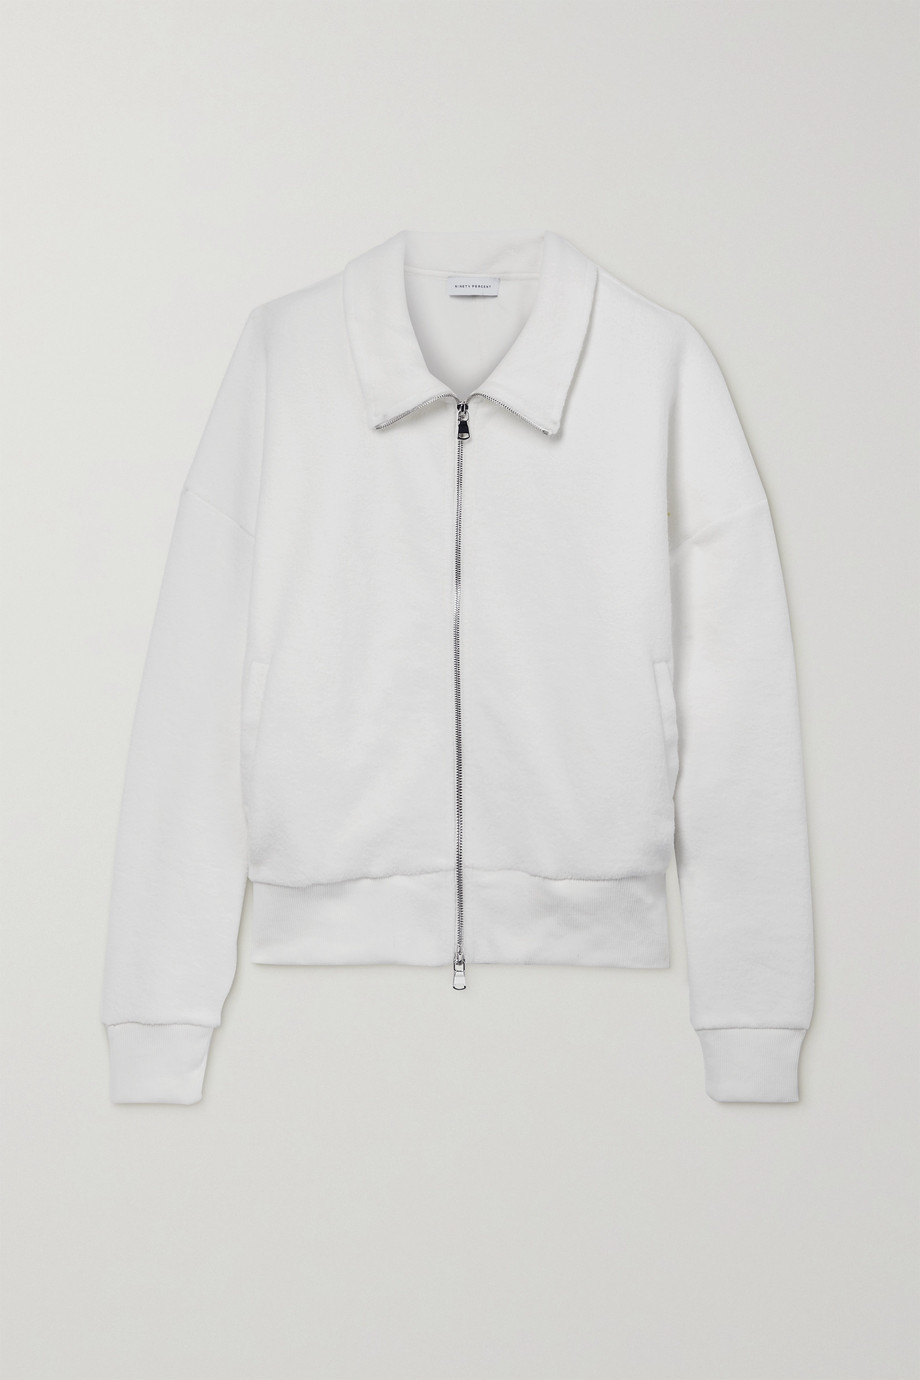 NINETY PERCENT + NET SUSTAIN oversized organic cotton-fleece jacket